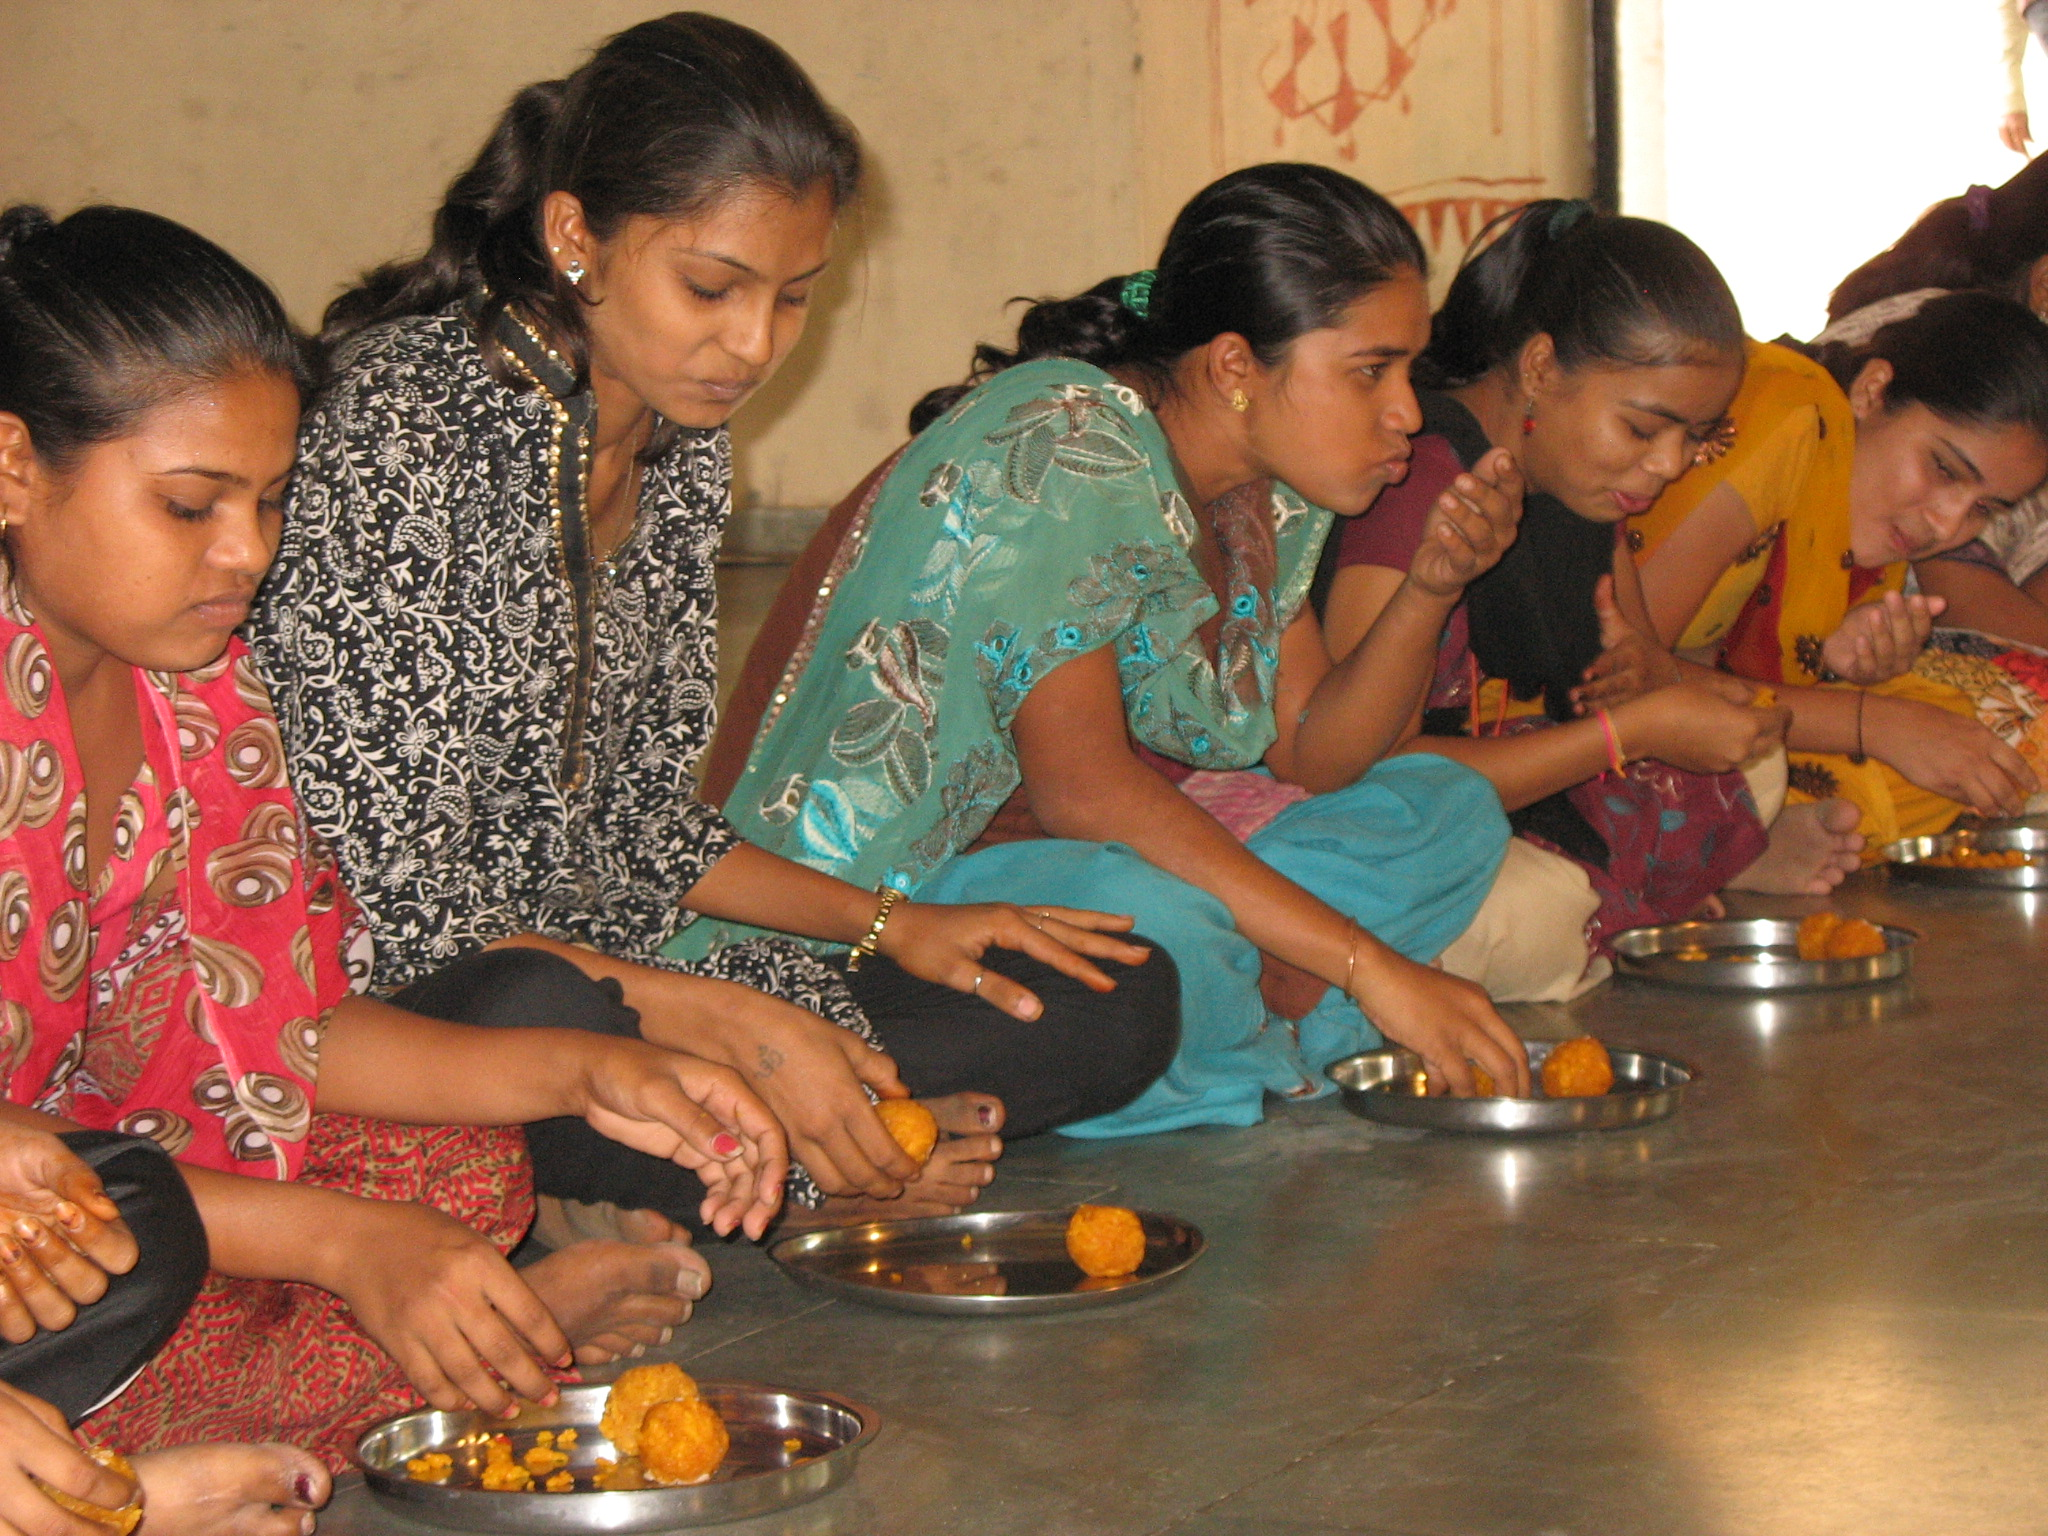 Dalit girls taking part in the sweet eating competition